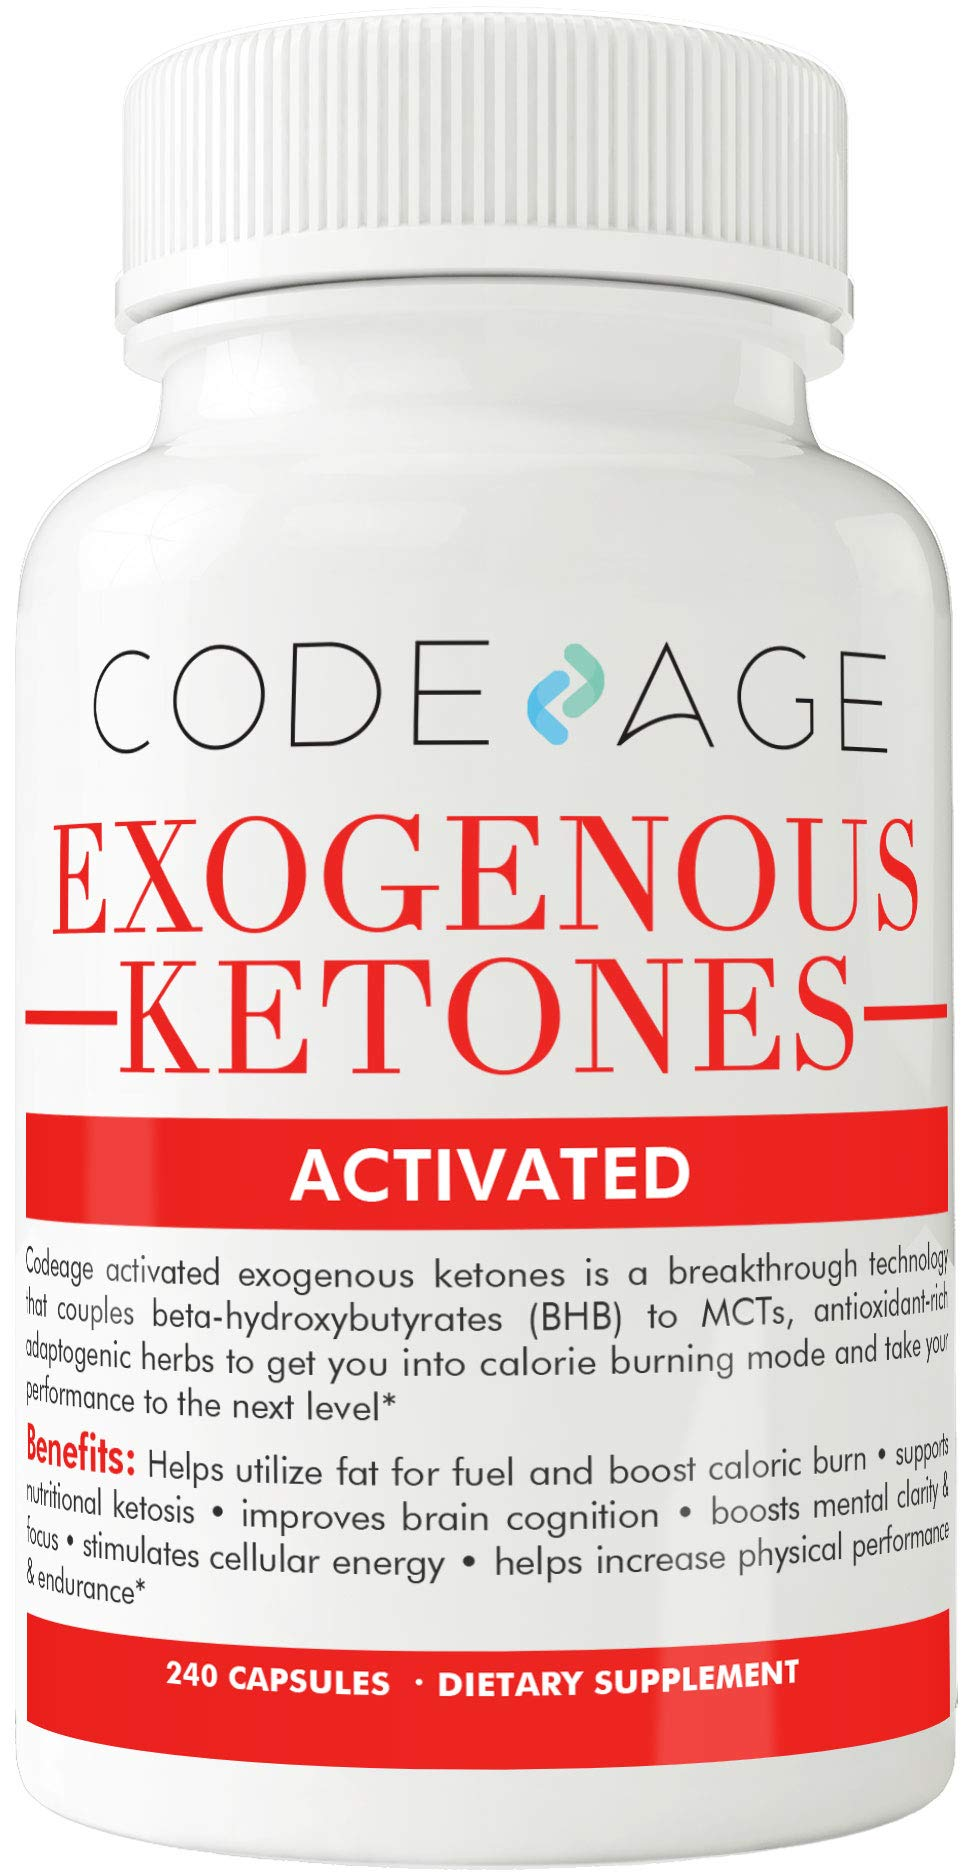 Codeage BHB Exogenous Ketones Supplement Pills, with BHB Salts as Exogenous Ketones, Electrolytes and Caffeine, 240 Capsules